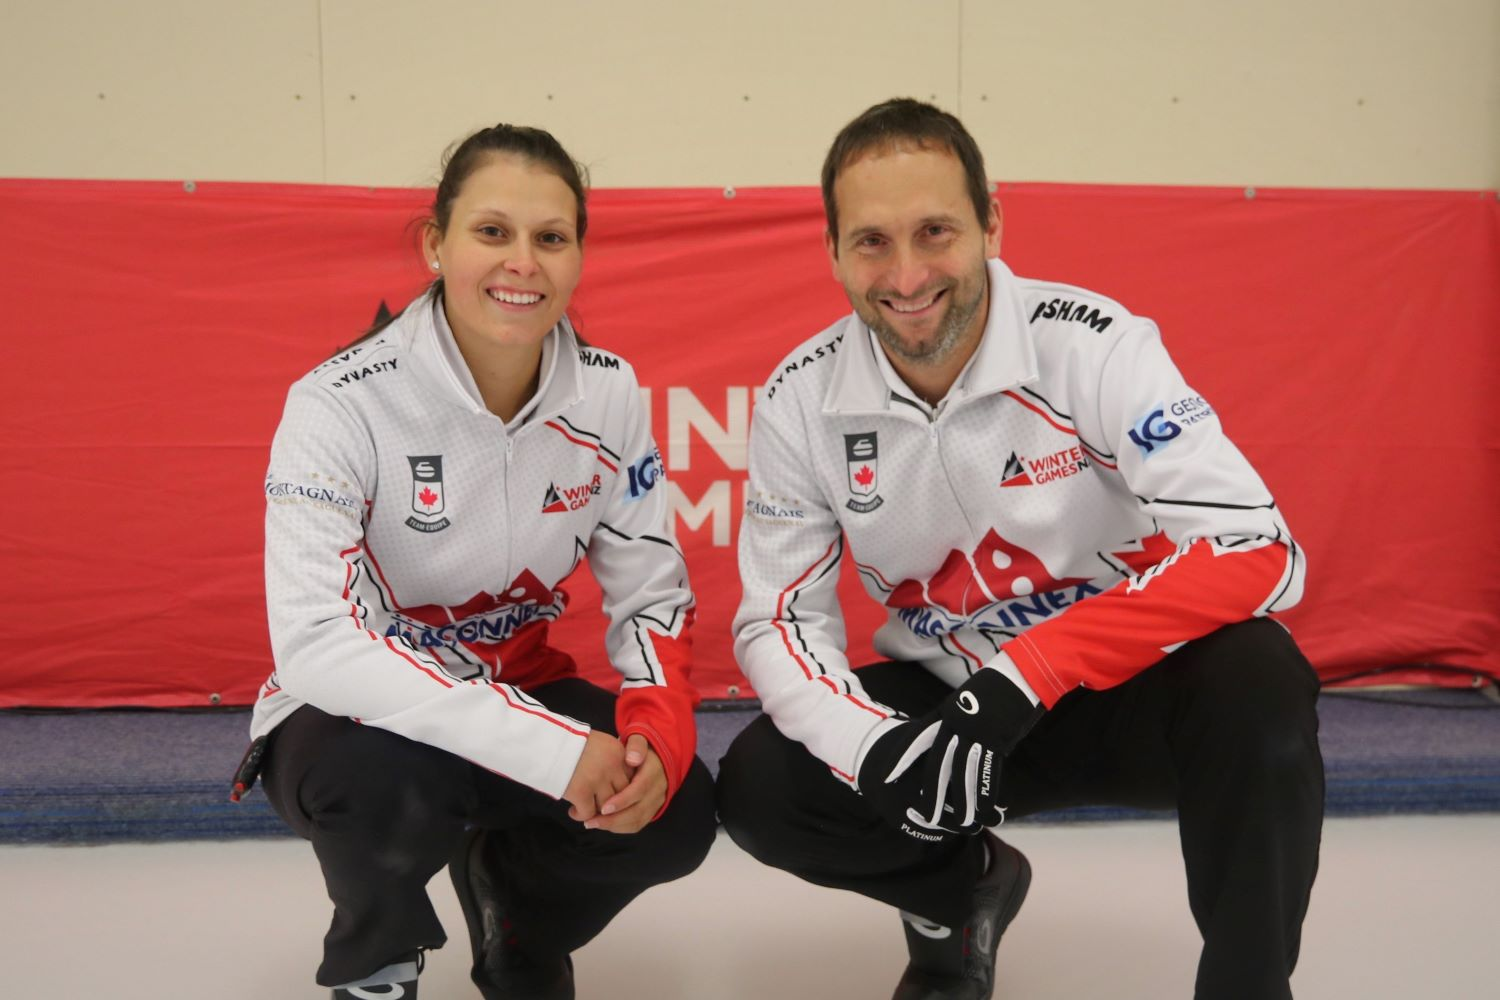 Team Canada - Emilie Desjardins and Robert Desjardins